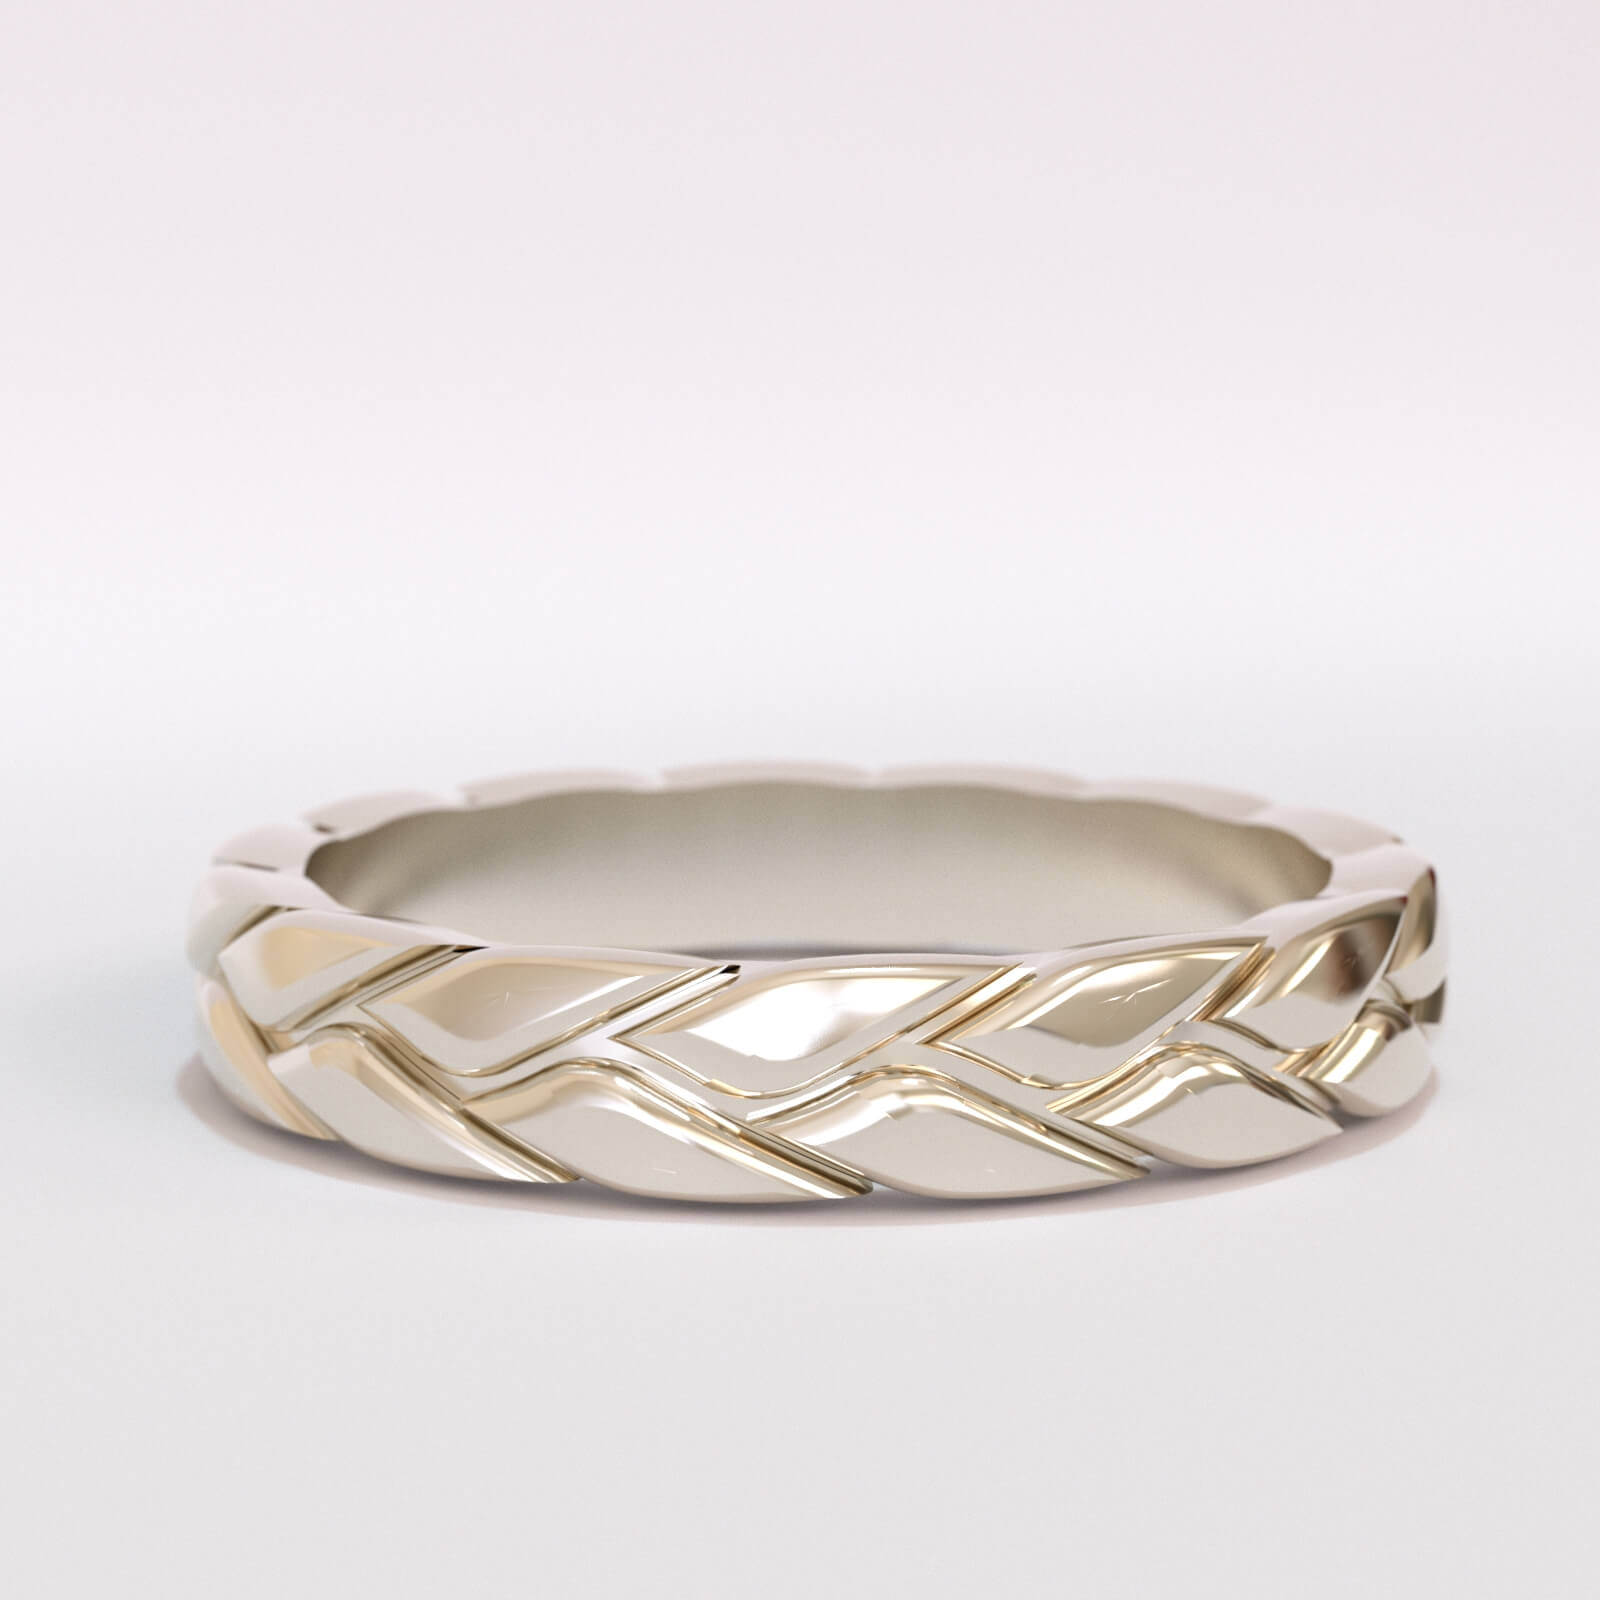 Tyre shape wedding band